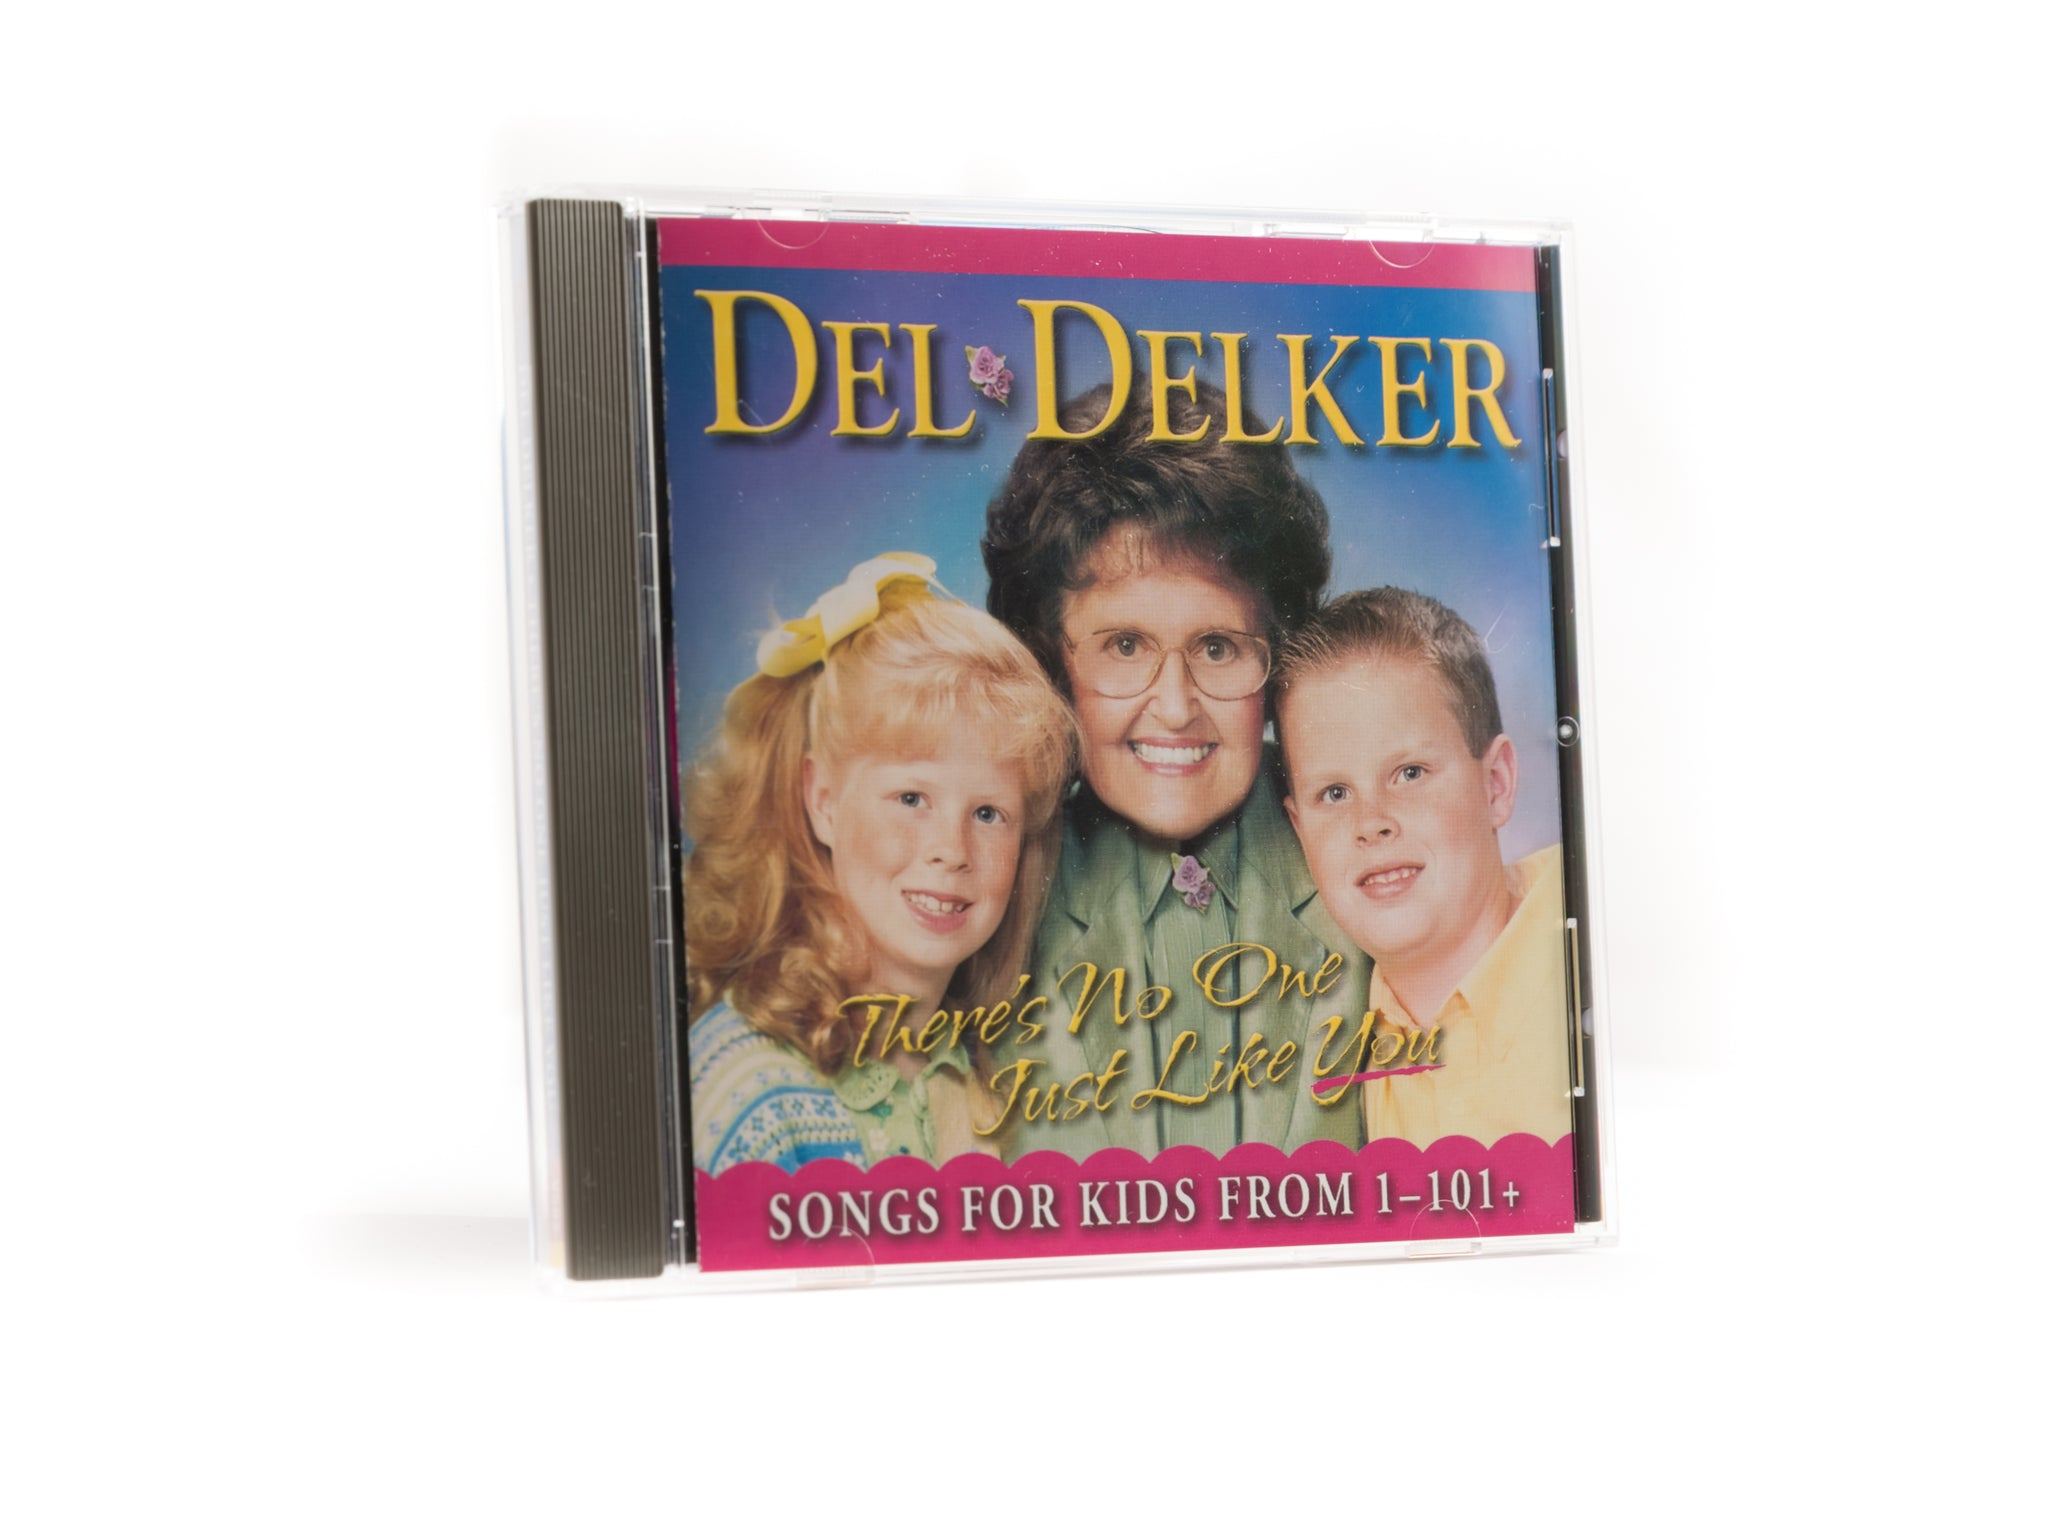 Del Delker CD - There's No One Just Like You